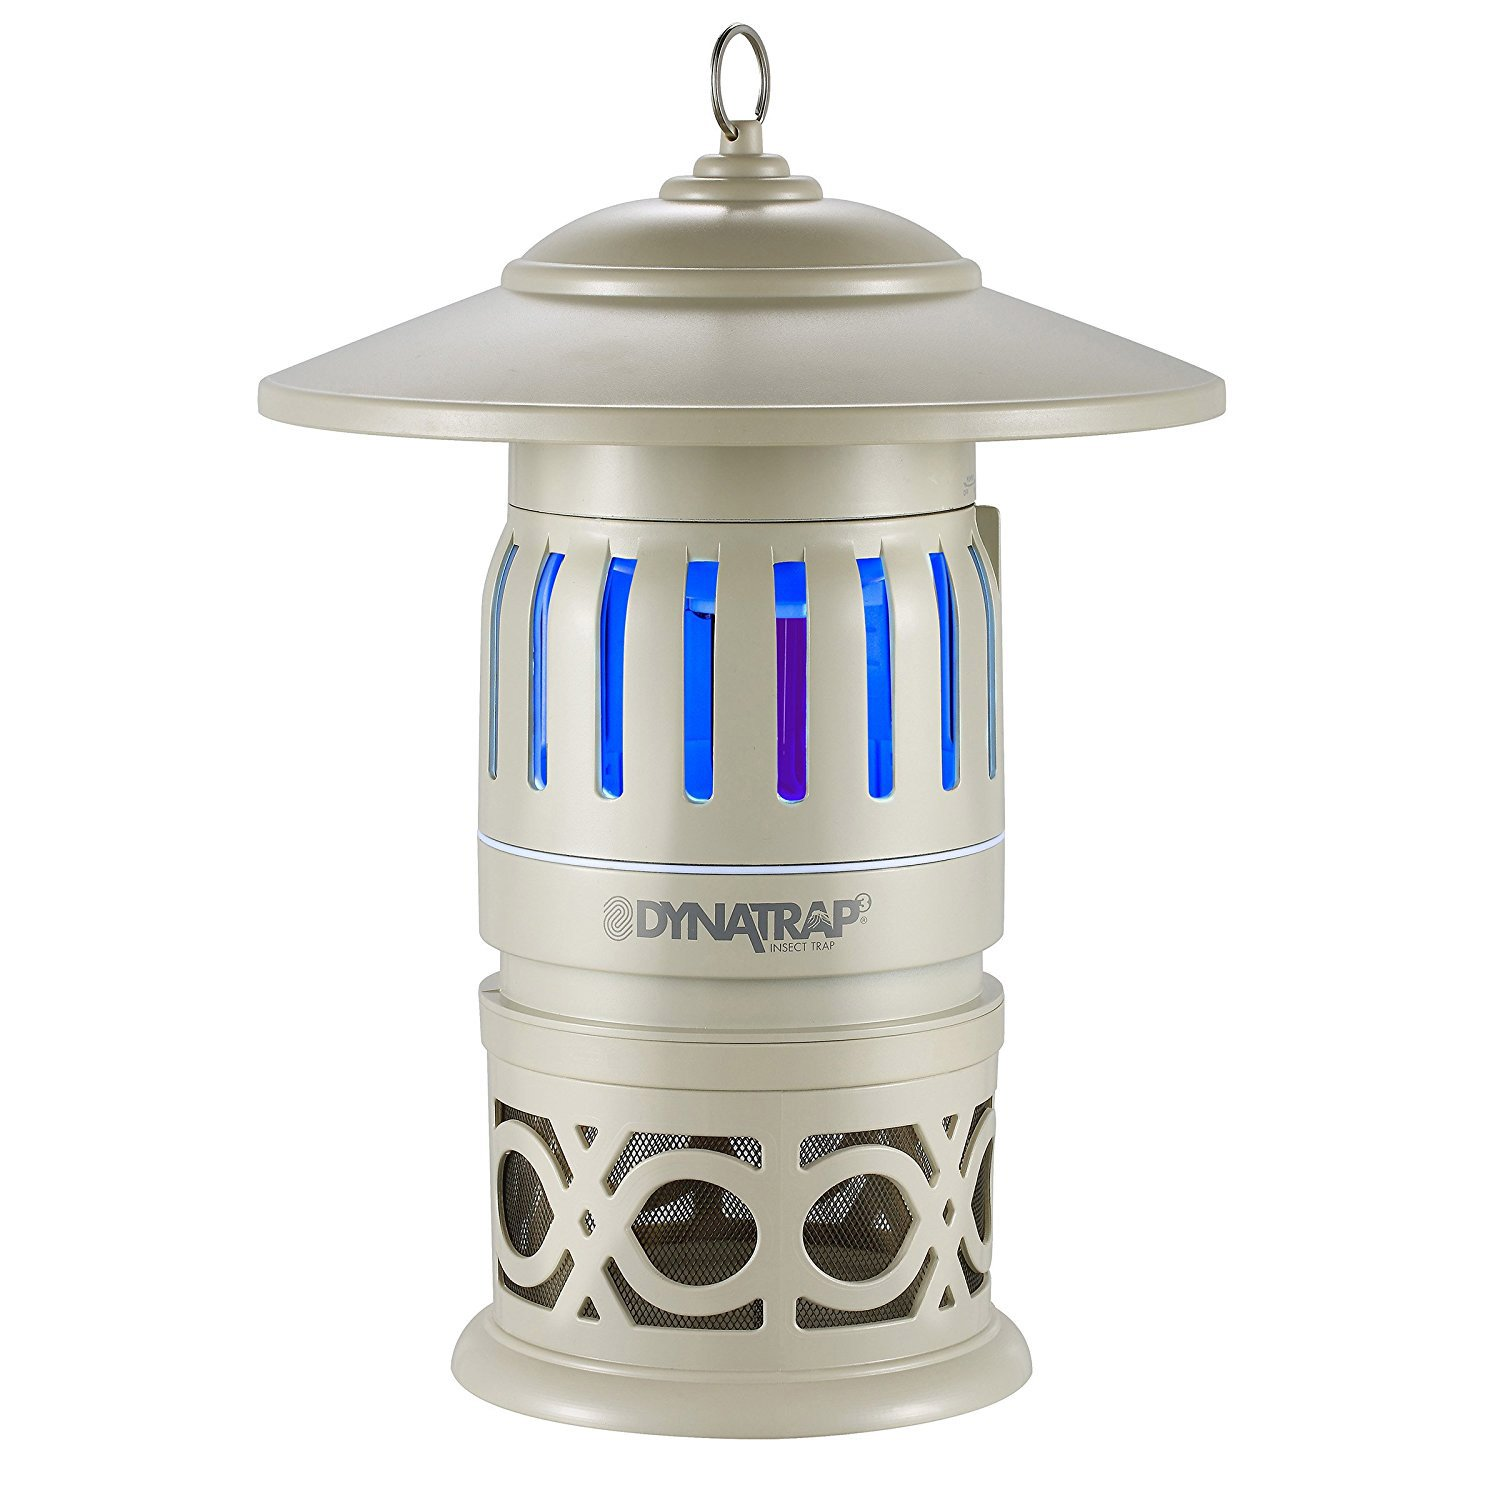 Dynatrap Decora Outdoor Patio Camping Mosquito Repellent Shield Lantern (6 Pack)